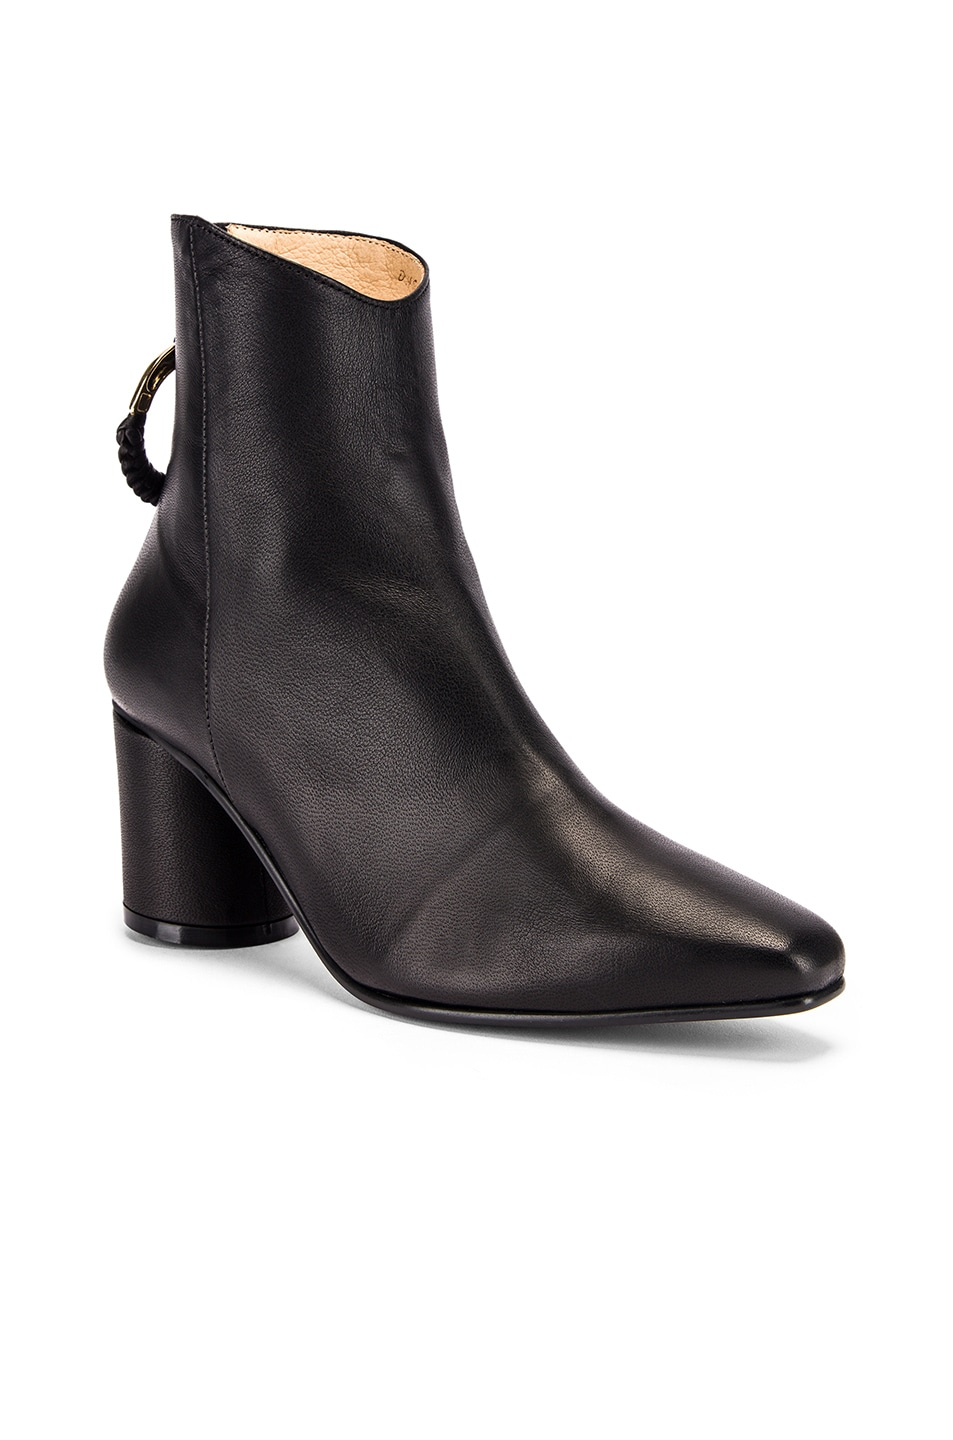 Image 2 of Reike Nen Oblique Turnover Ring Boots in Black